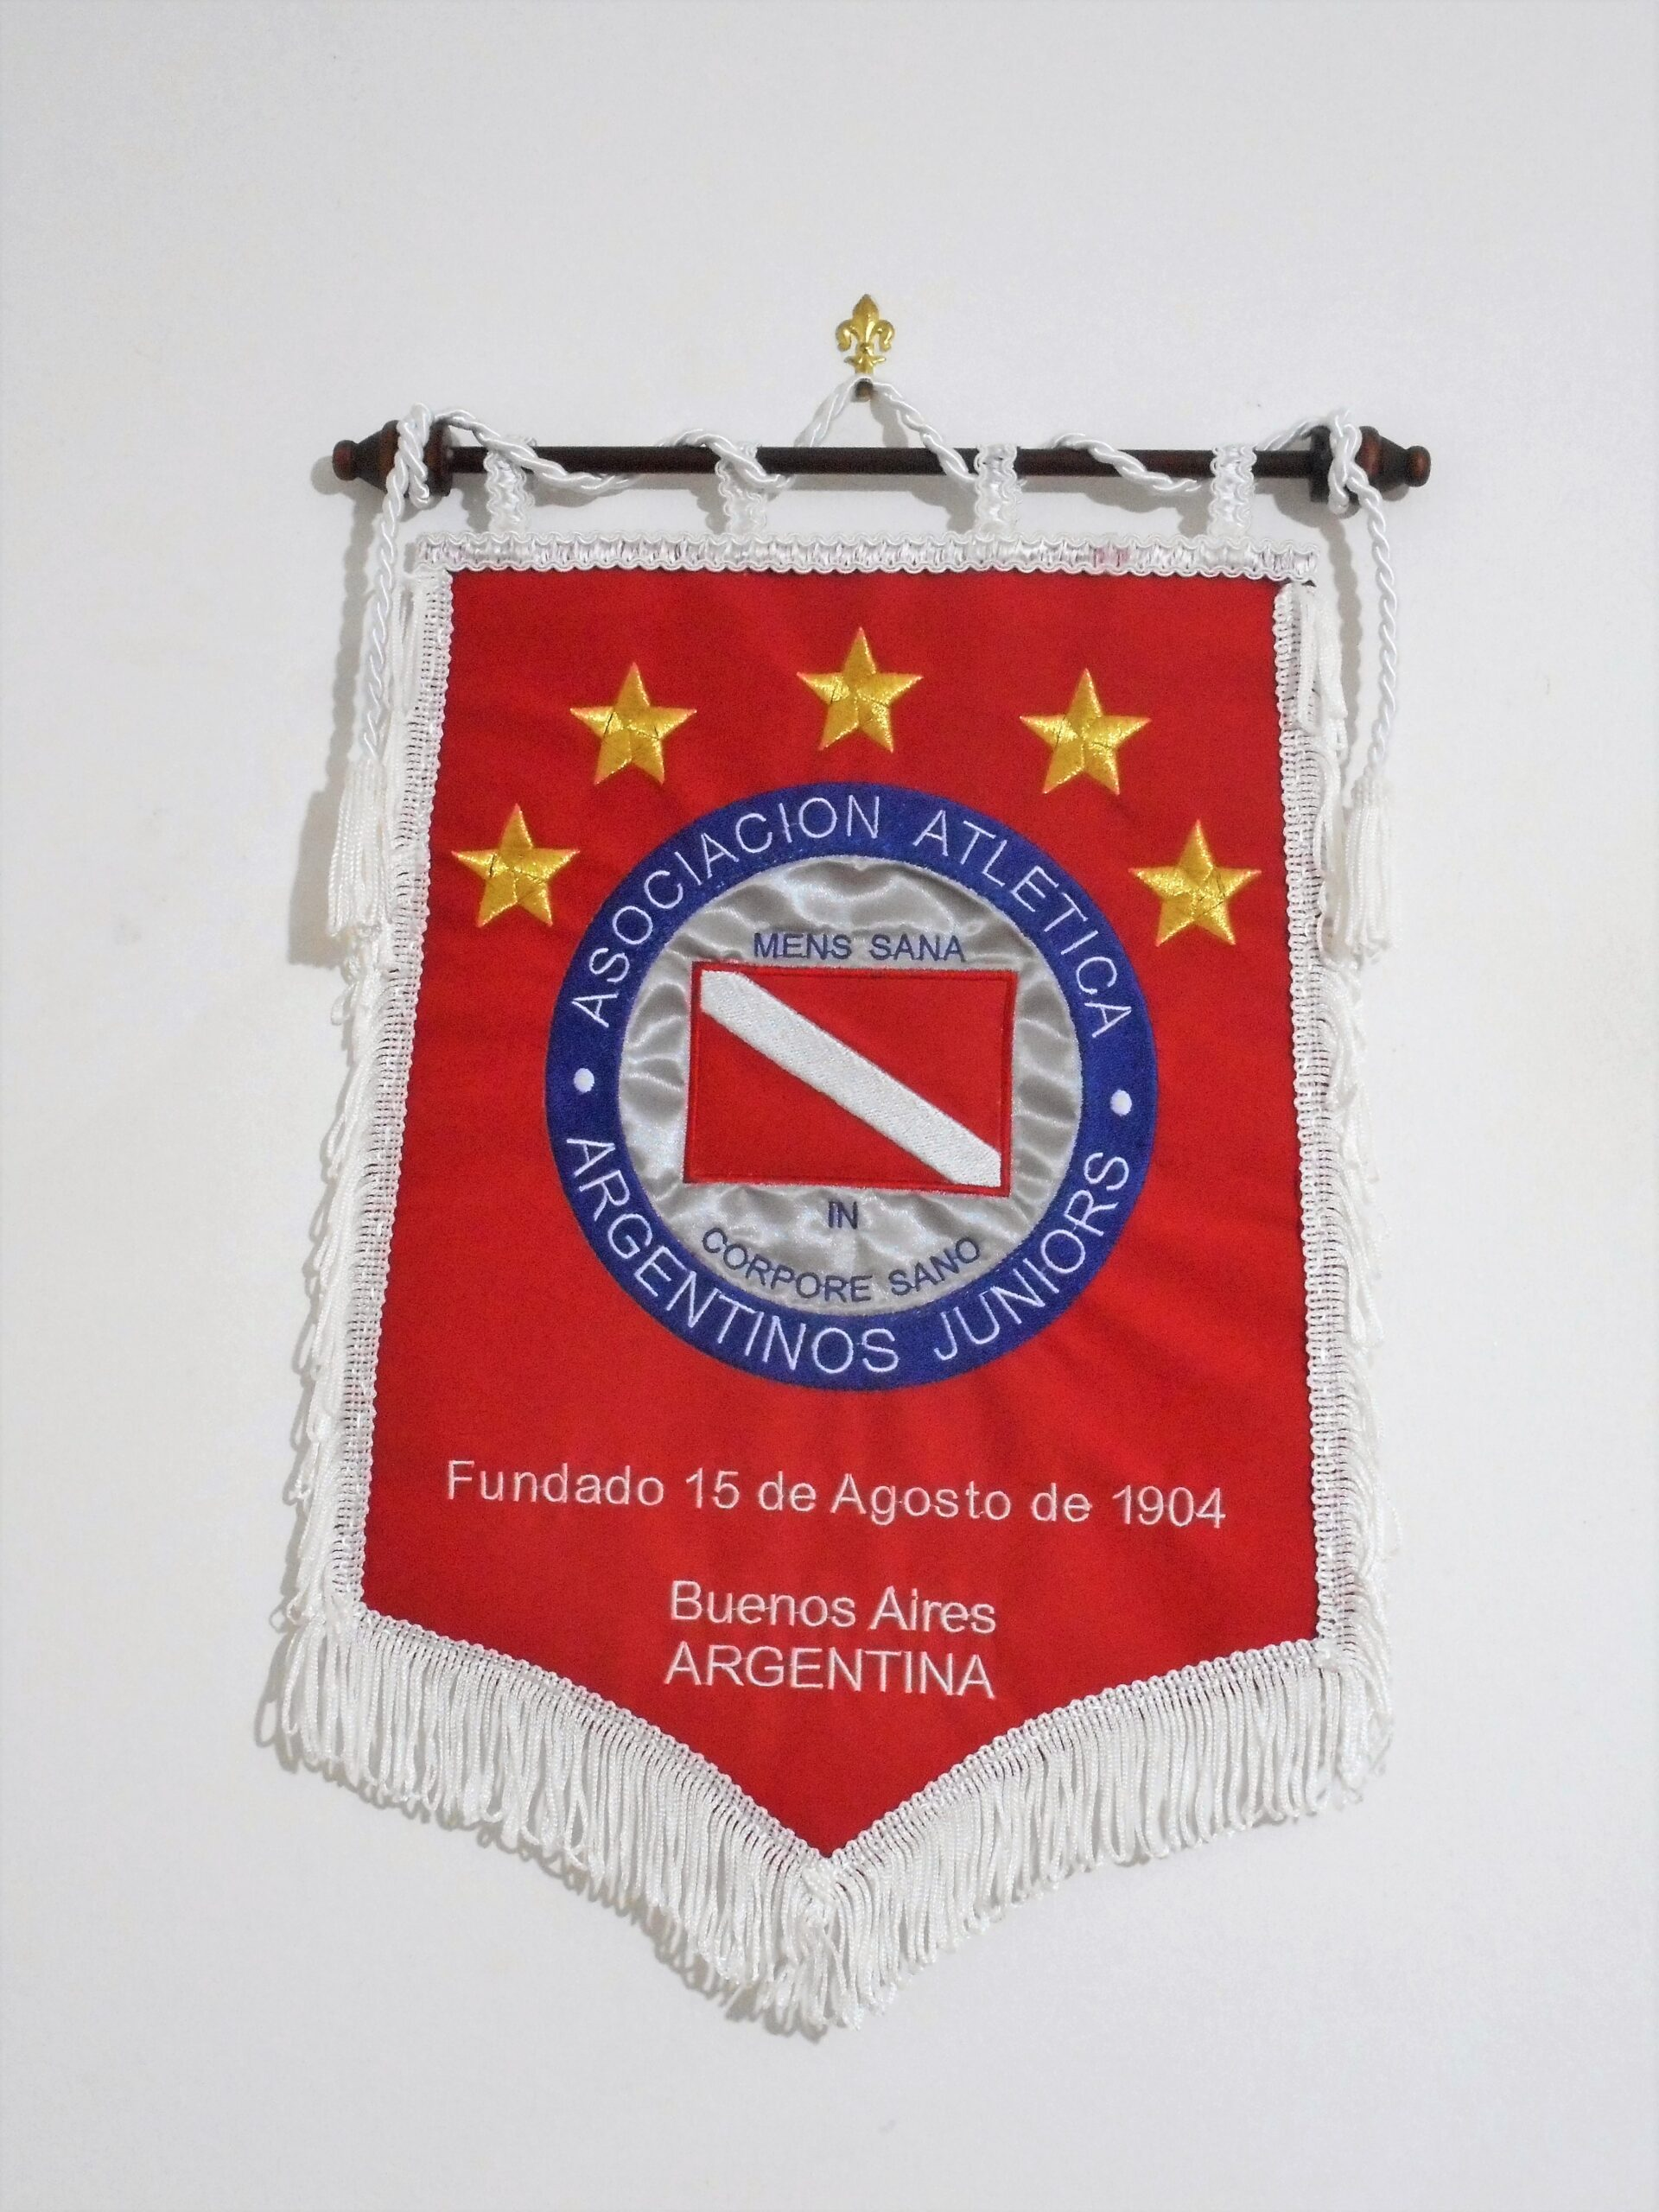 argentinos jrs a.a.